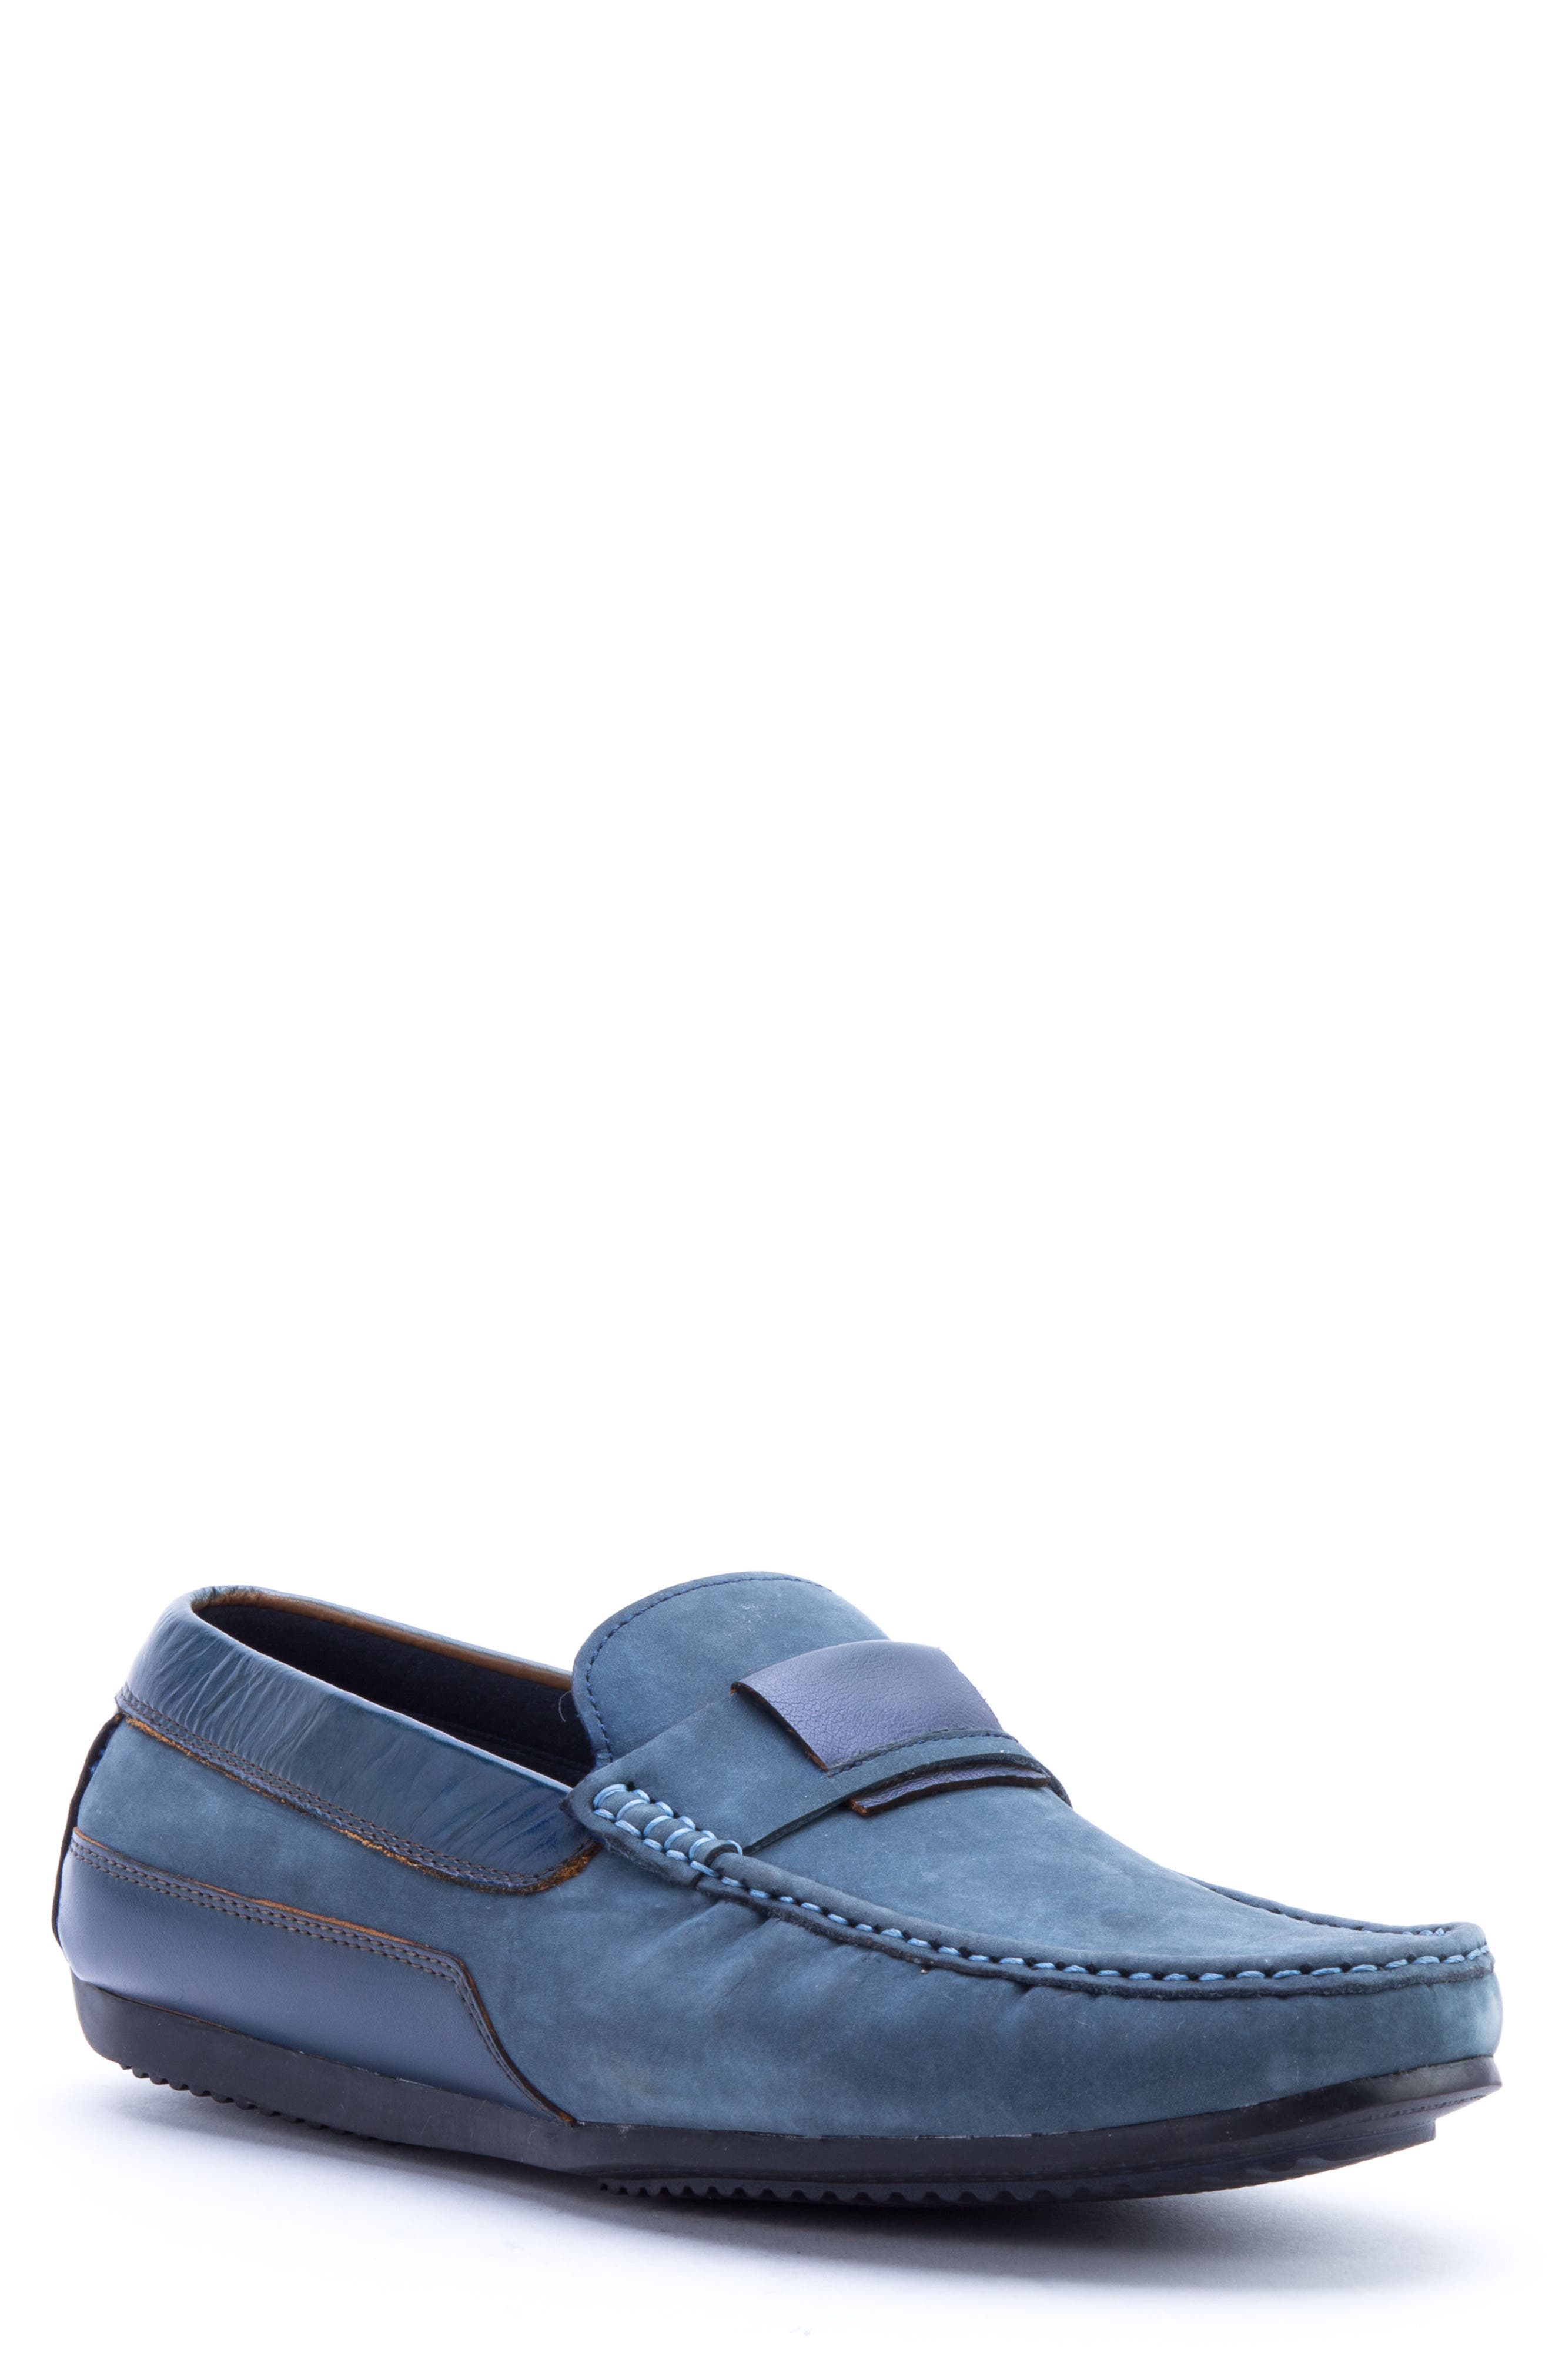 Seurat Driving Loafer,                             Main thumbnail 1, color,                             Blue Suede/ Leather